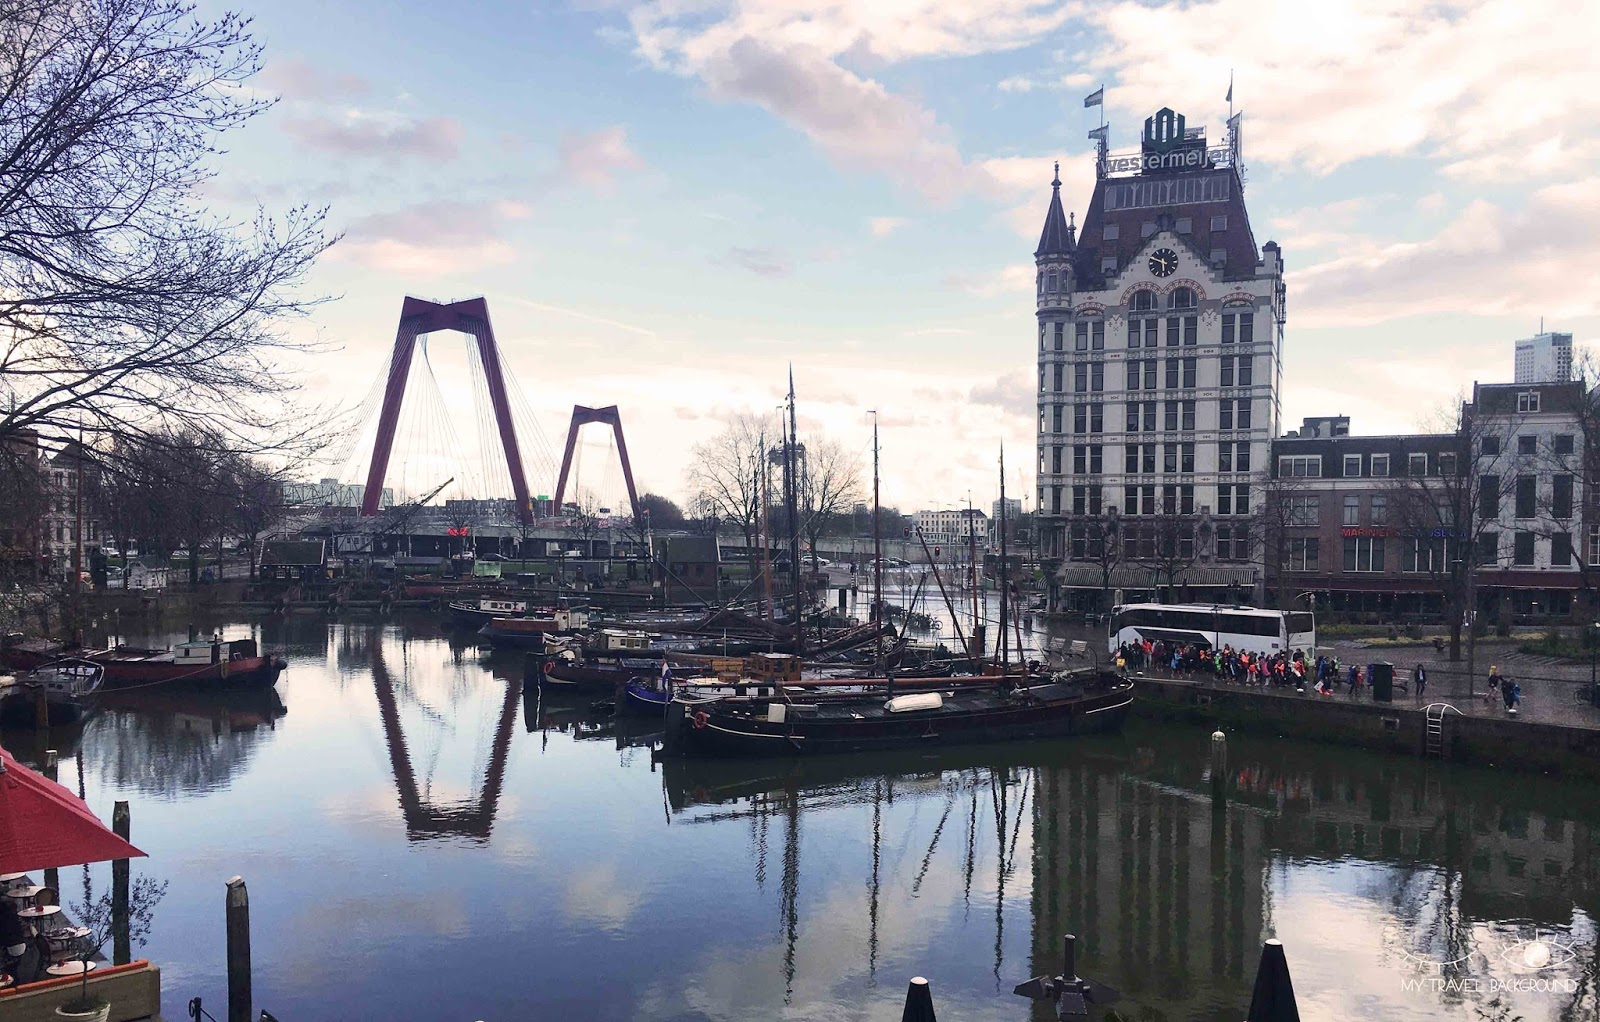 My Travel Background : 1 week-end aux Pays-Bas, de Rotterdam à Delft - Rotterdam